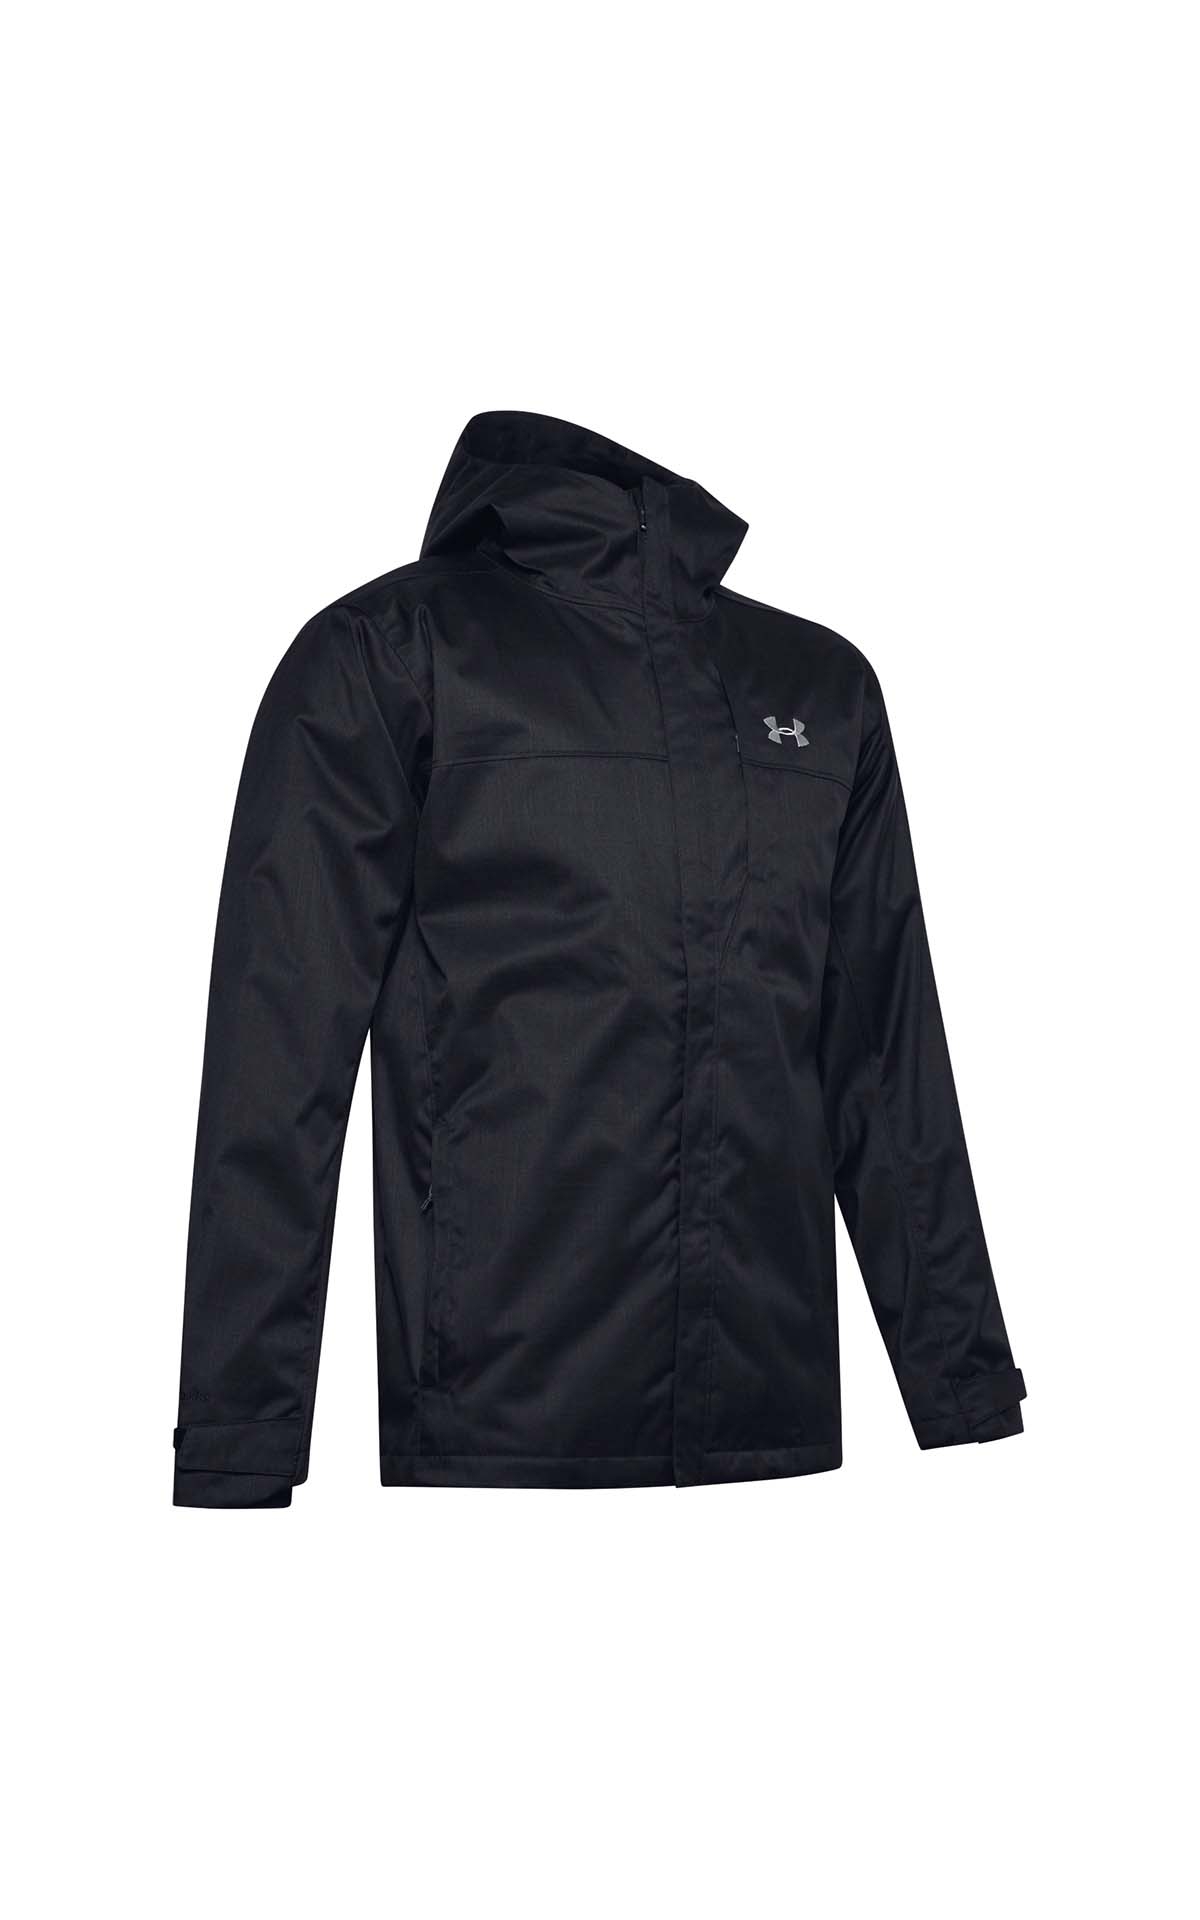 Under Armour Men's Porter 3 in 1 Jacket at The Bicester Village Shopping Collection